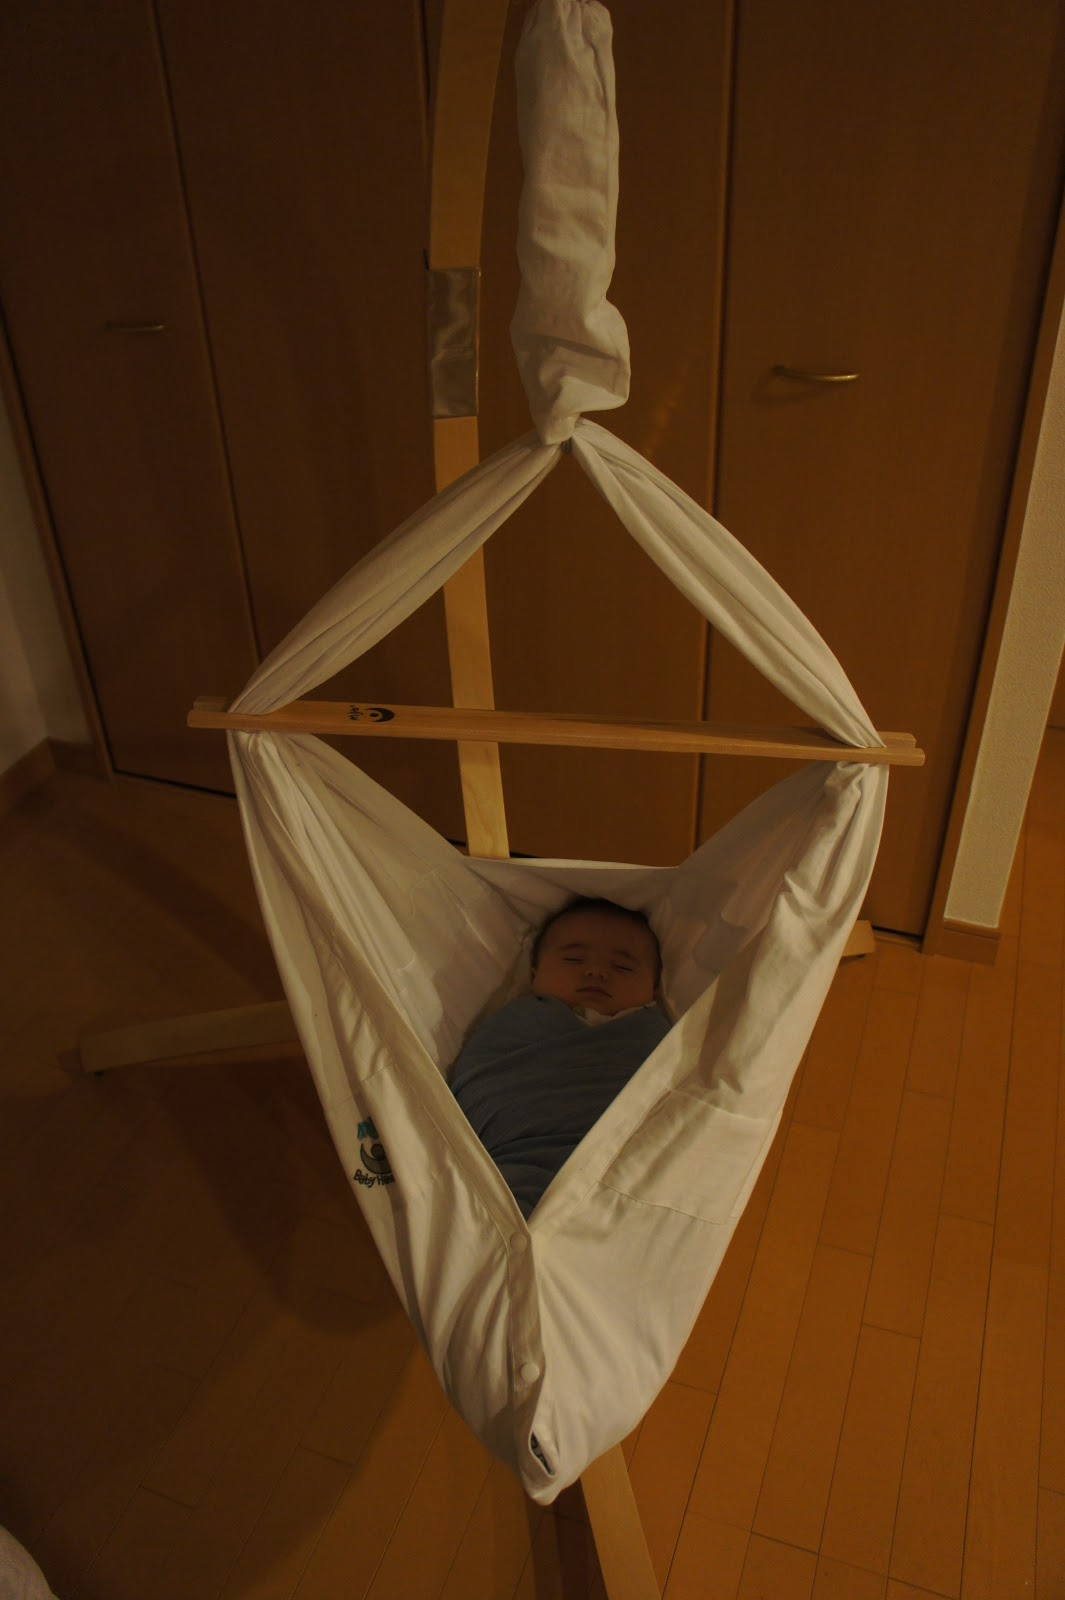 excellent for traveling  u2013 easy to fit in suitcase and baby is happy with being in his familiar hammock wherever you go    miyo baby hammock  u2013 tokyo urban baby  rh   tokyourbanbaby